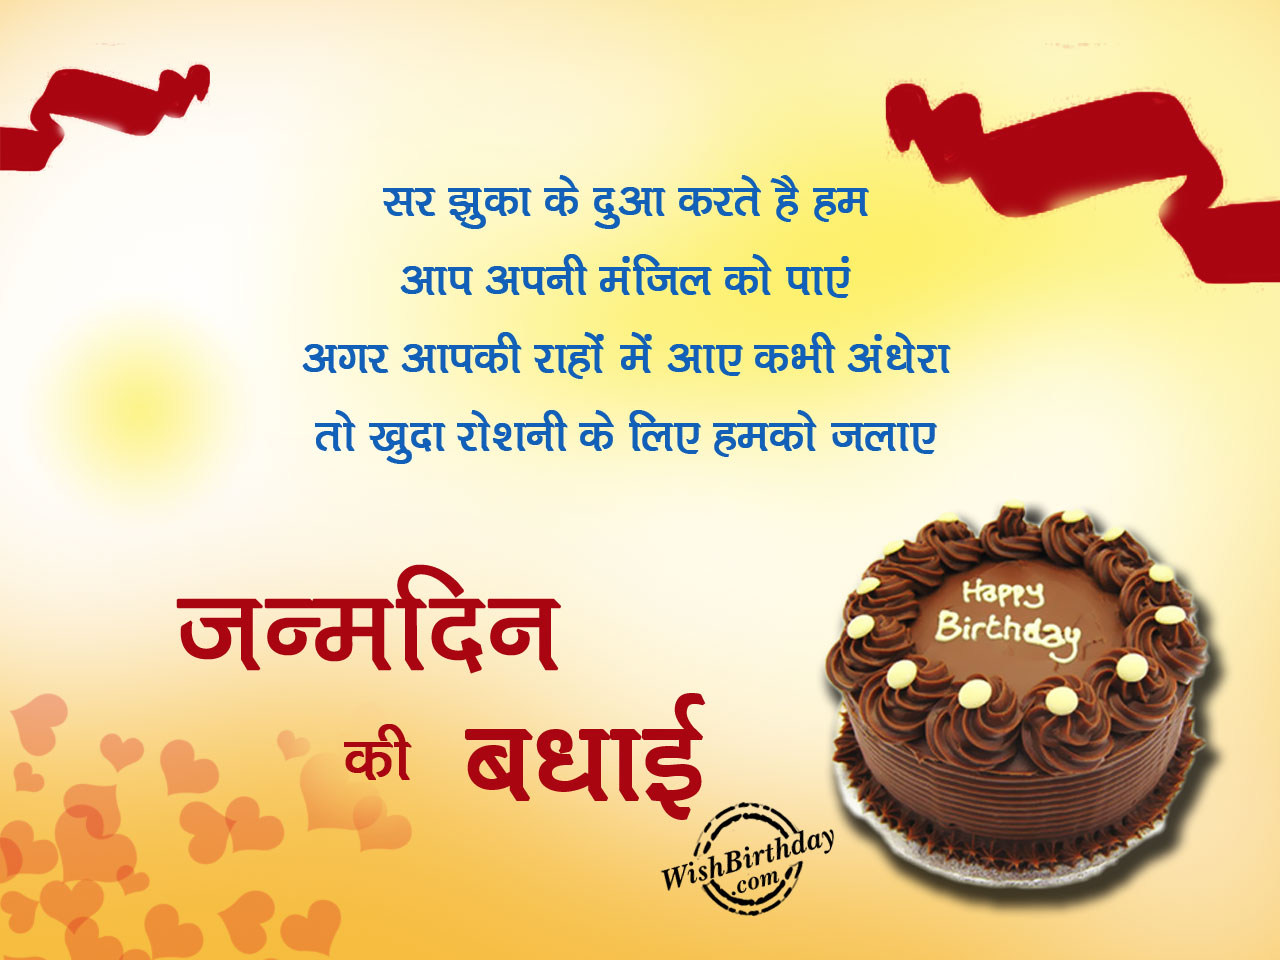 happy birthday message to friend in hindi ; Sar-jhuka-k-dua-karte-hain-hum